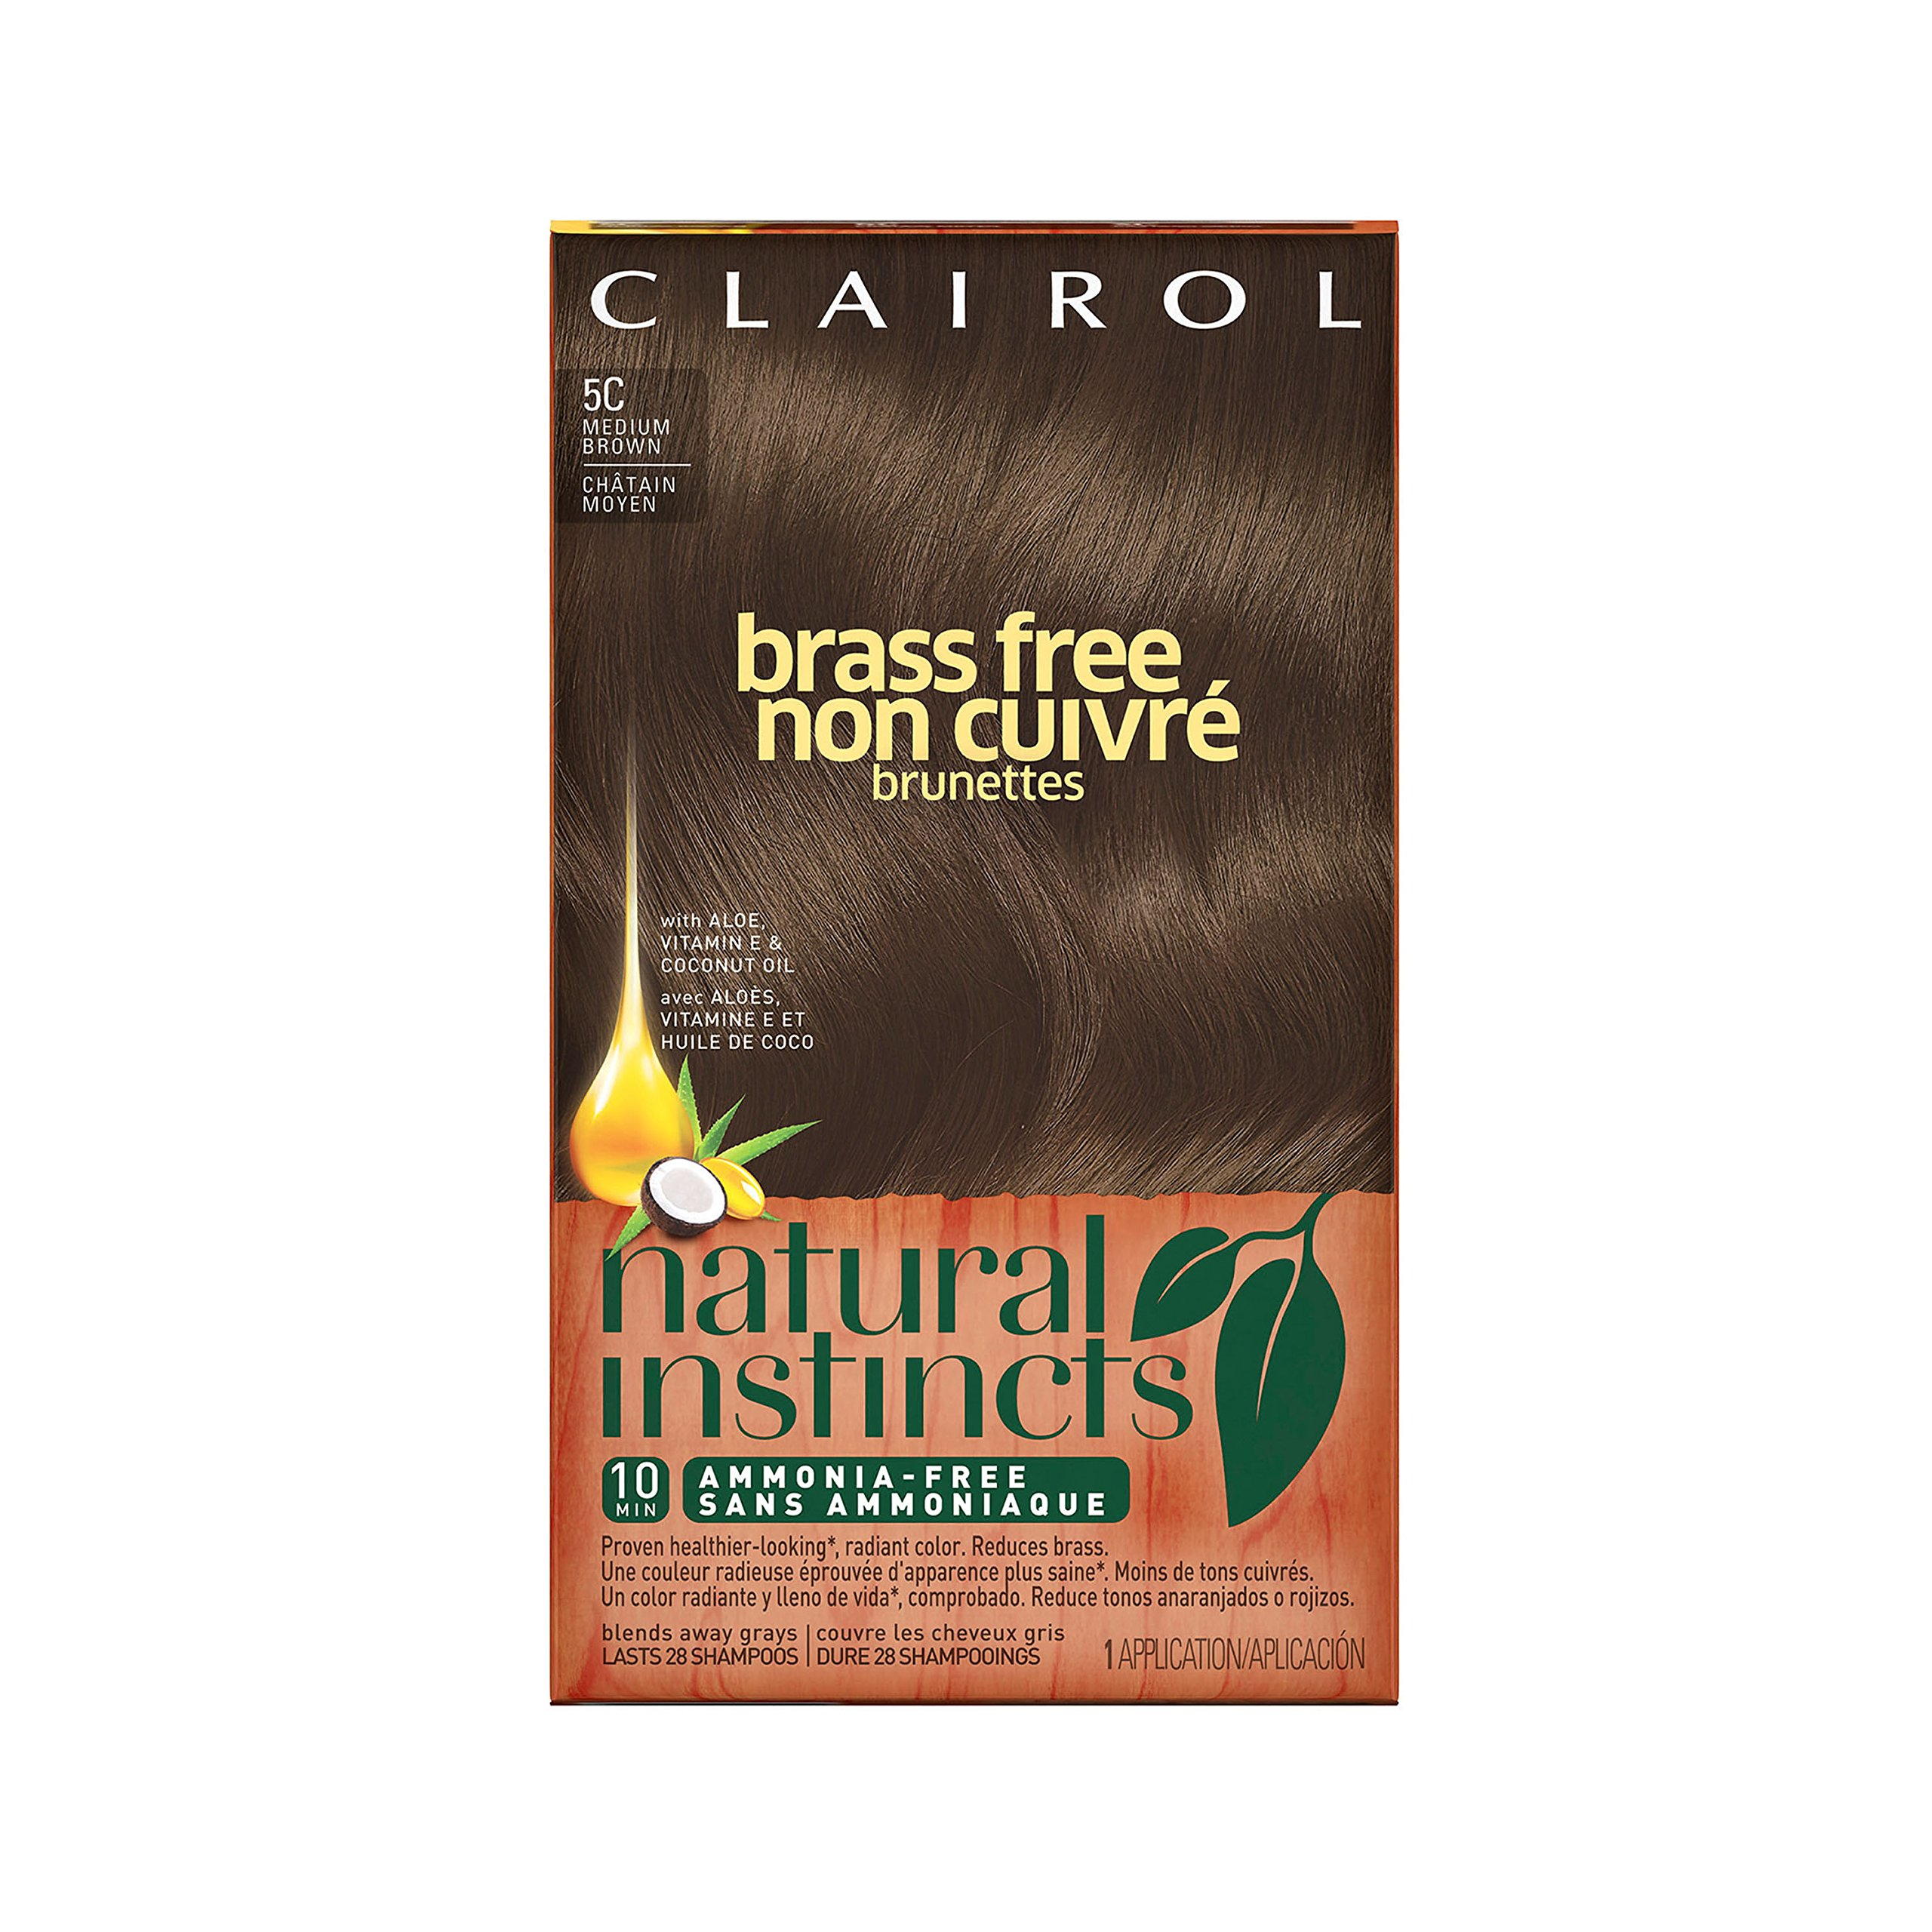 Clairol Natural Instincts Semi-Permanent Hair Color (Pack of 3), 5C Brass Free Medium Brown Color, Ammonia Free, Lasts for 28 Shampoos by Clairol (Image #1)